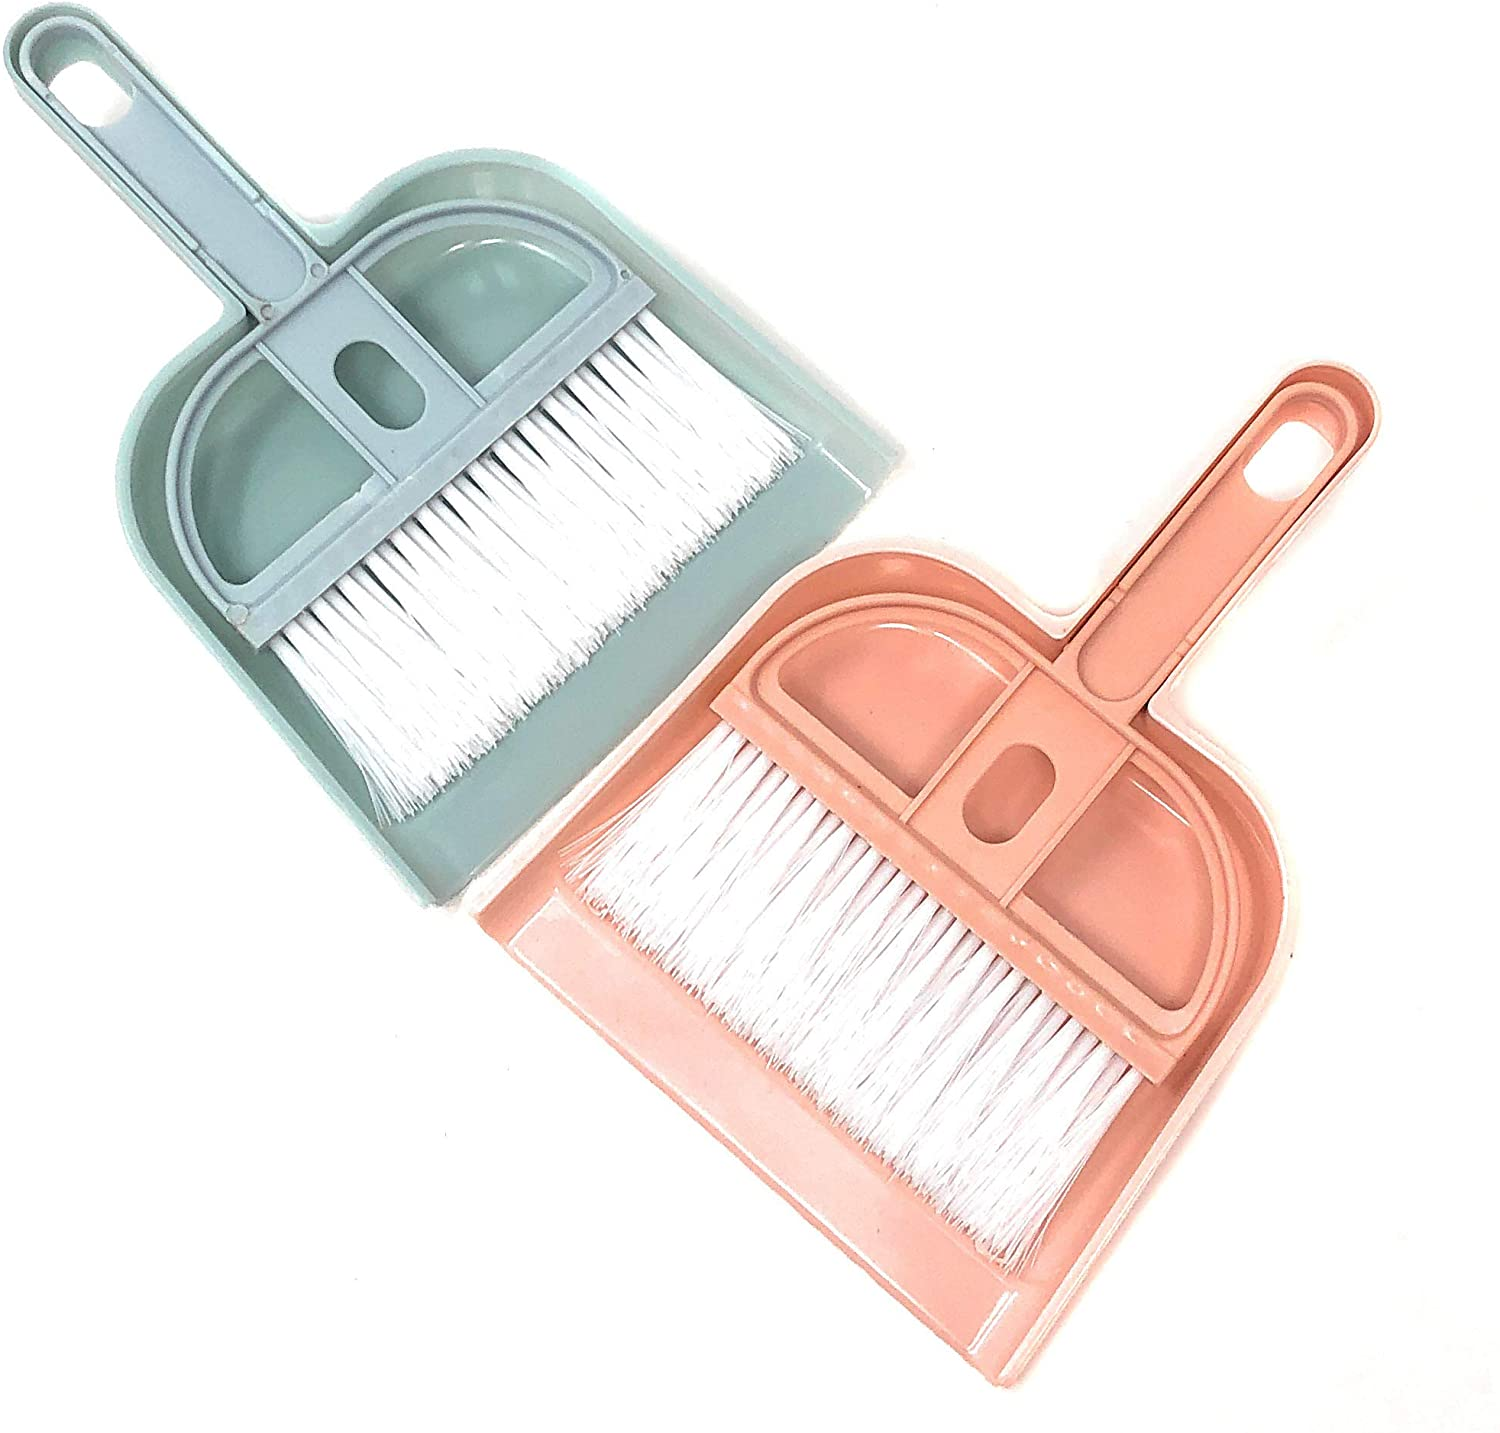 Rusoji Set of 2 Mini Brush with Dustpan Cleaner Set Small Handy Sweeping Cleaning Tool for Office Desk, Home Computer Keyboard, Pet Cage Waste, Car Interior